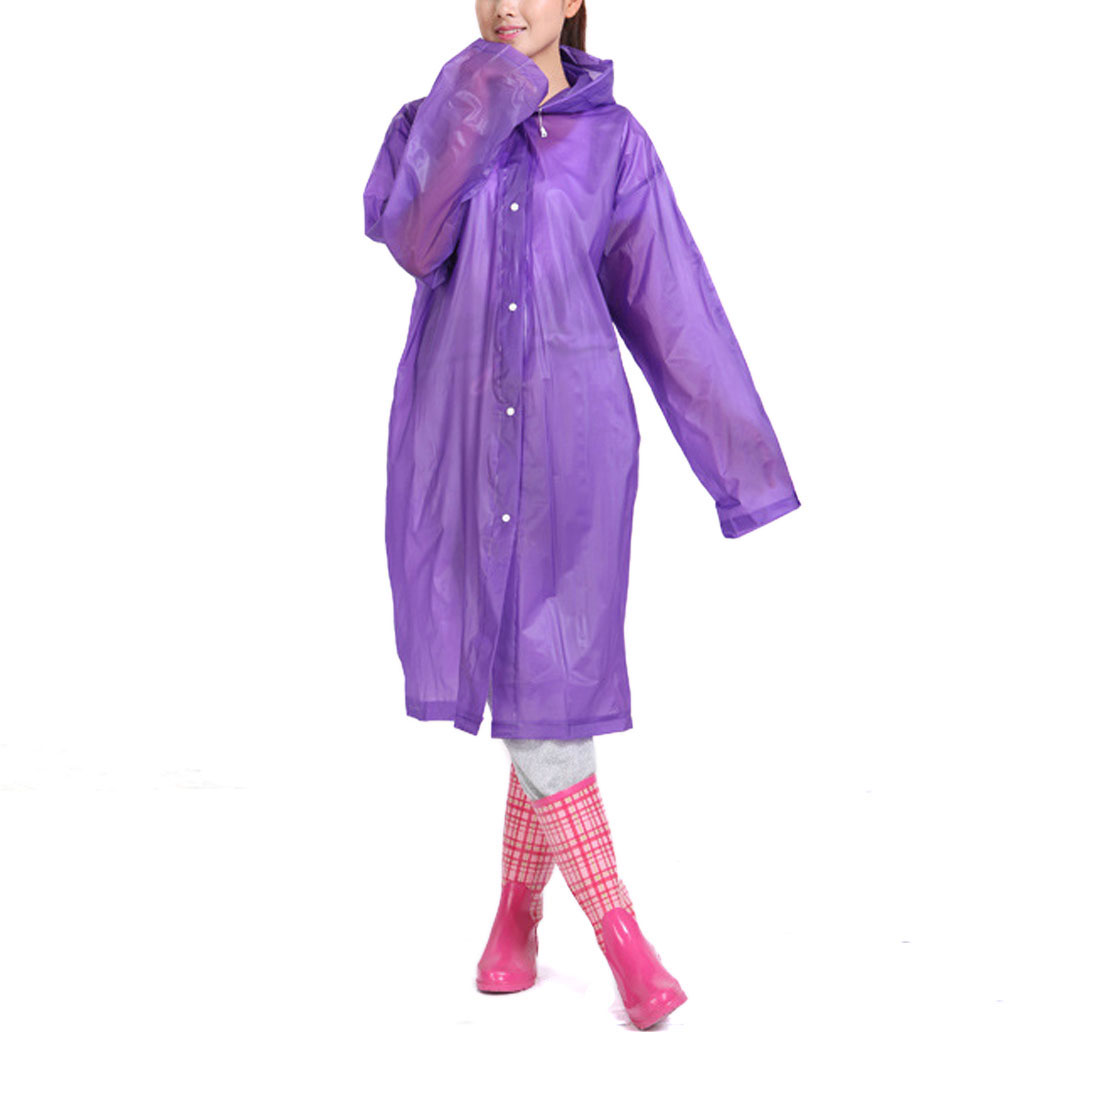 L Purple Portable EVA Waterproof Adult Raincoat Hooded Rain Poncho for Bicycle